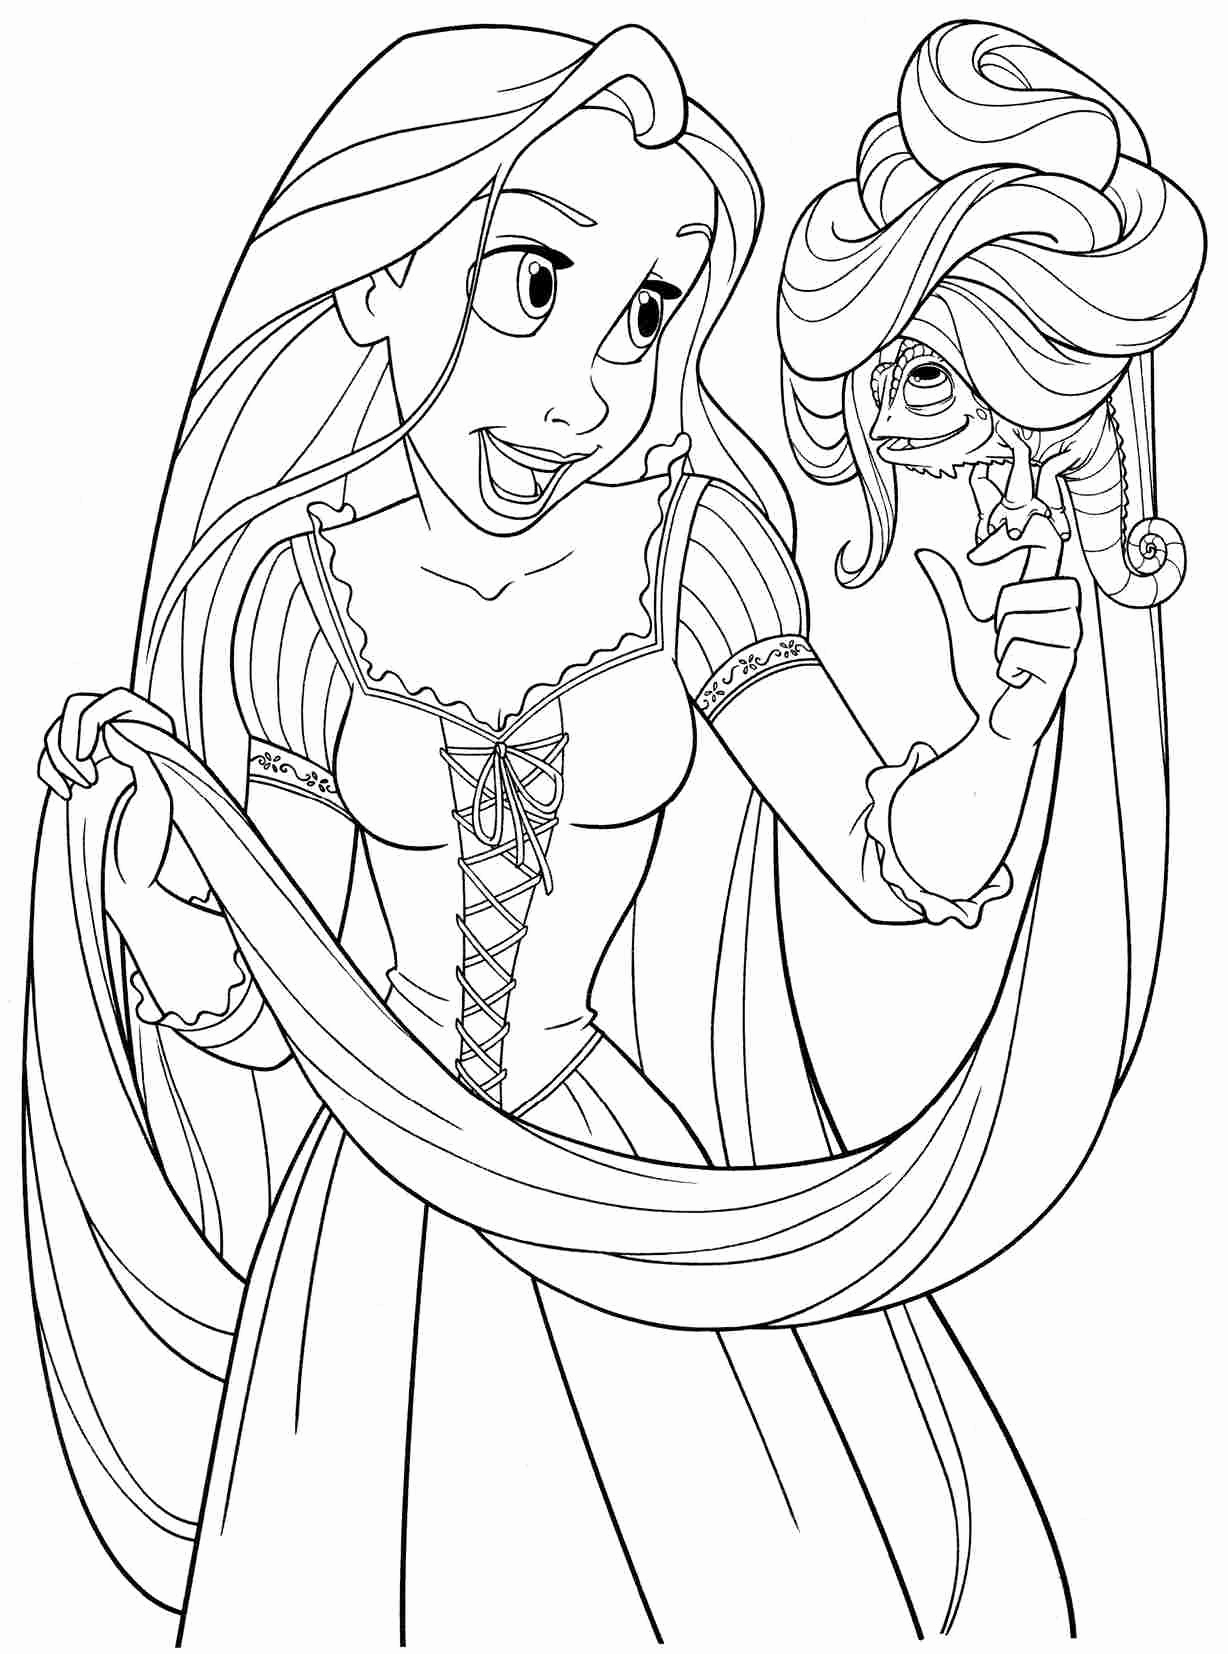 Print Free Coloring Pages Disney Gallery 1d - Free Download